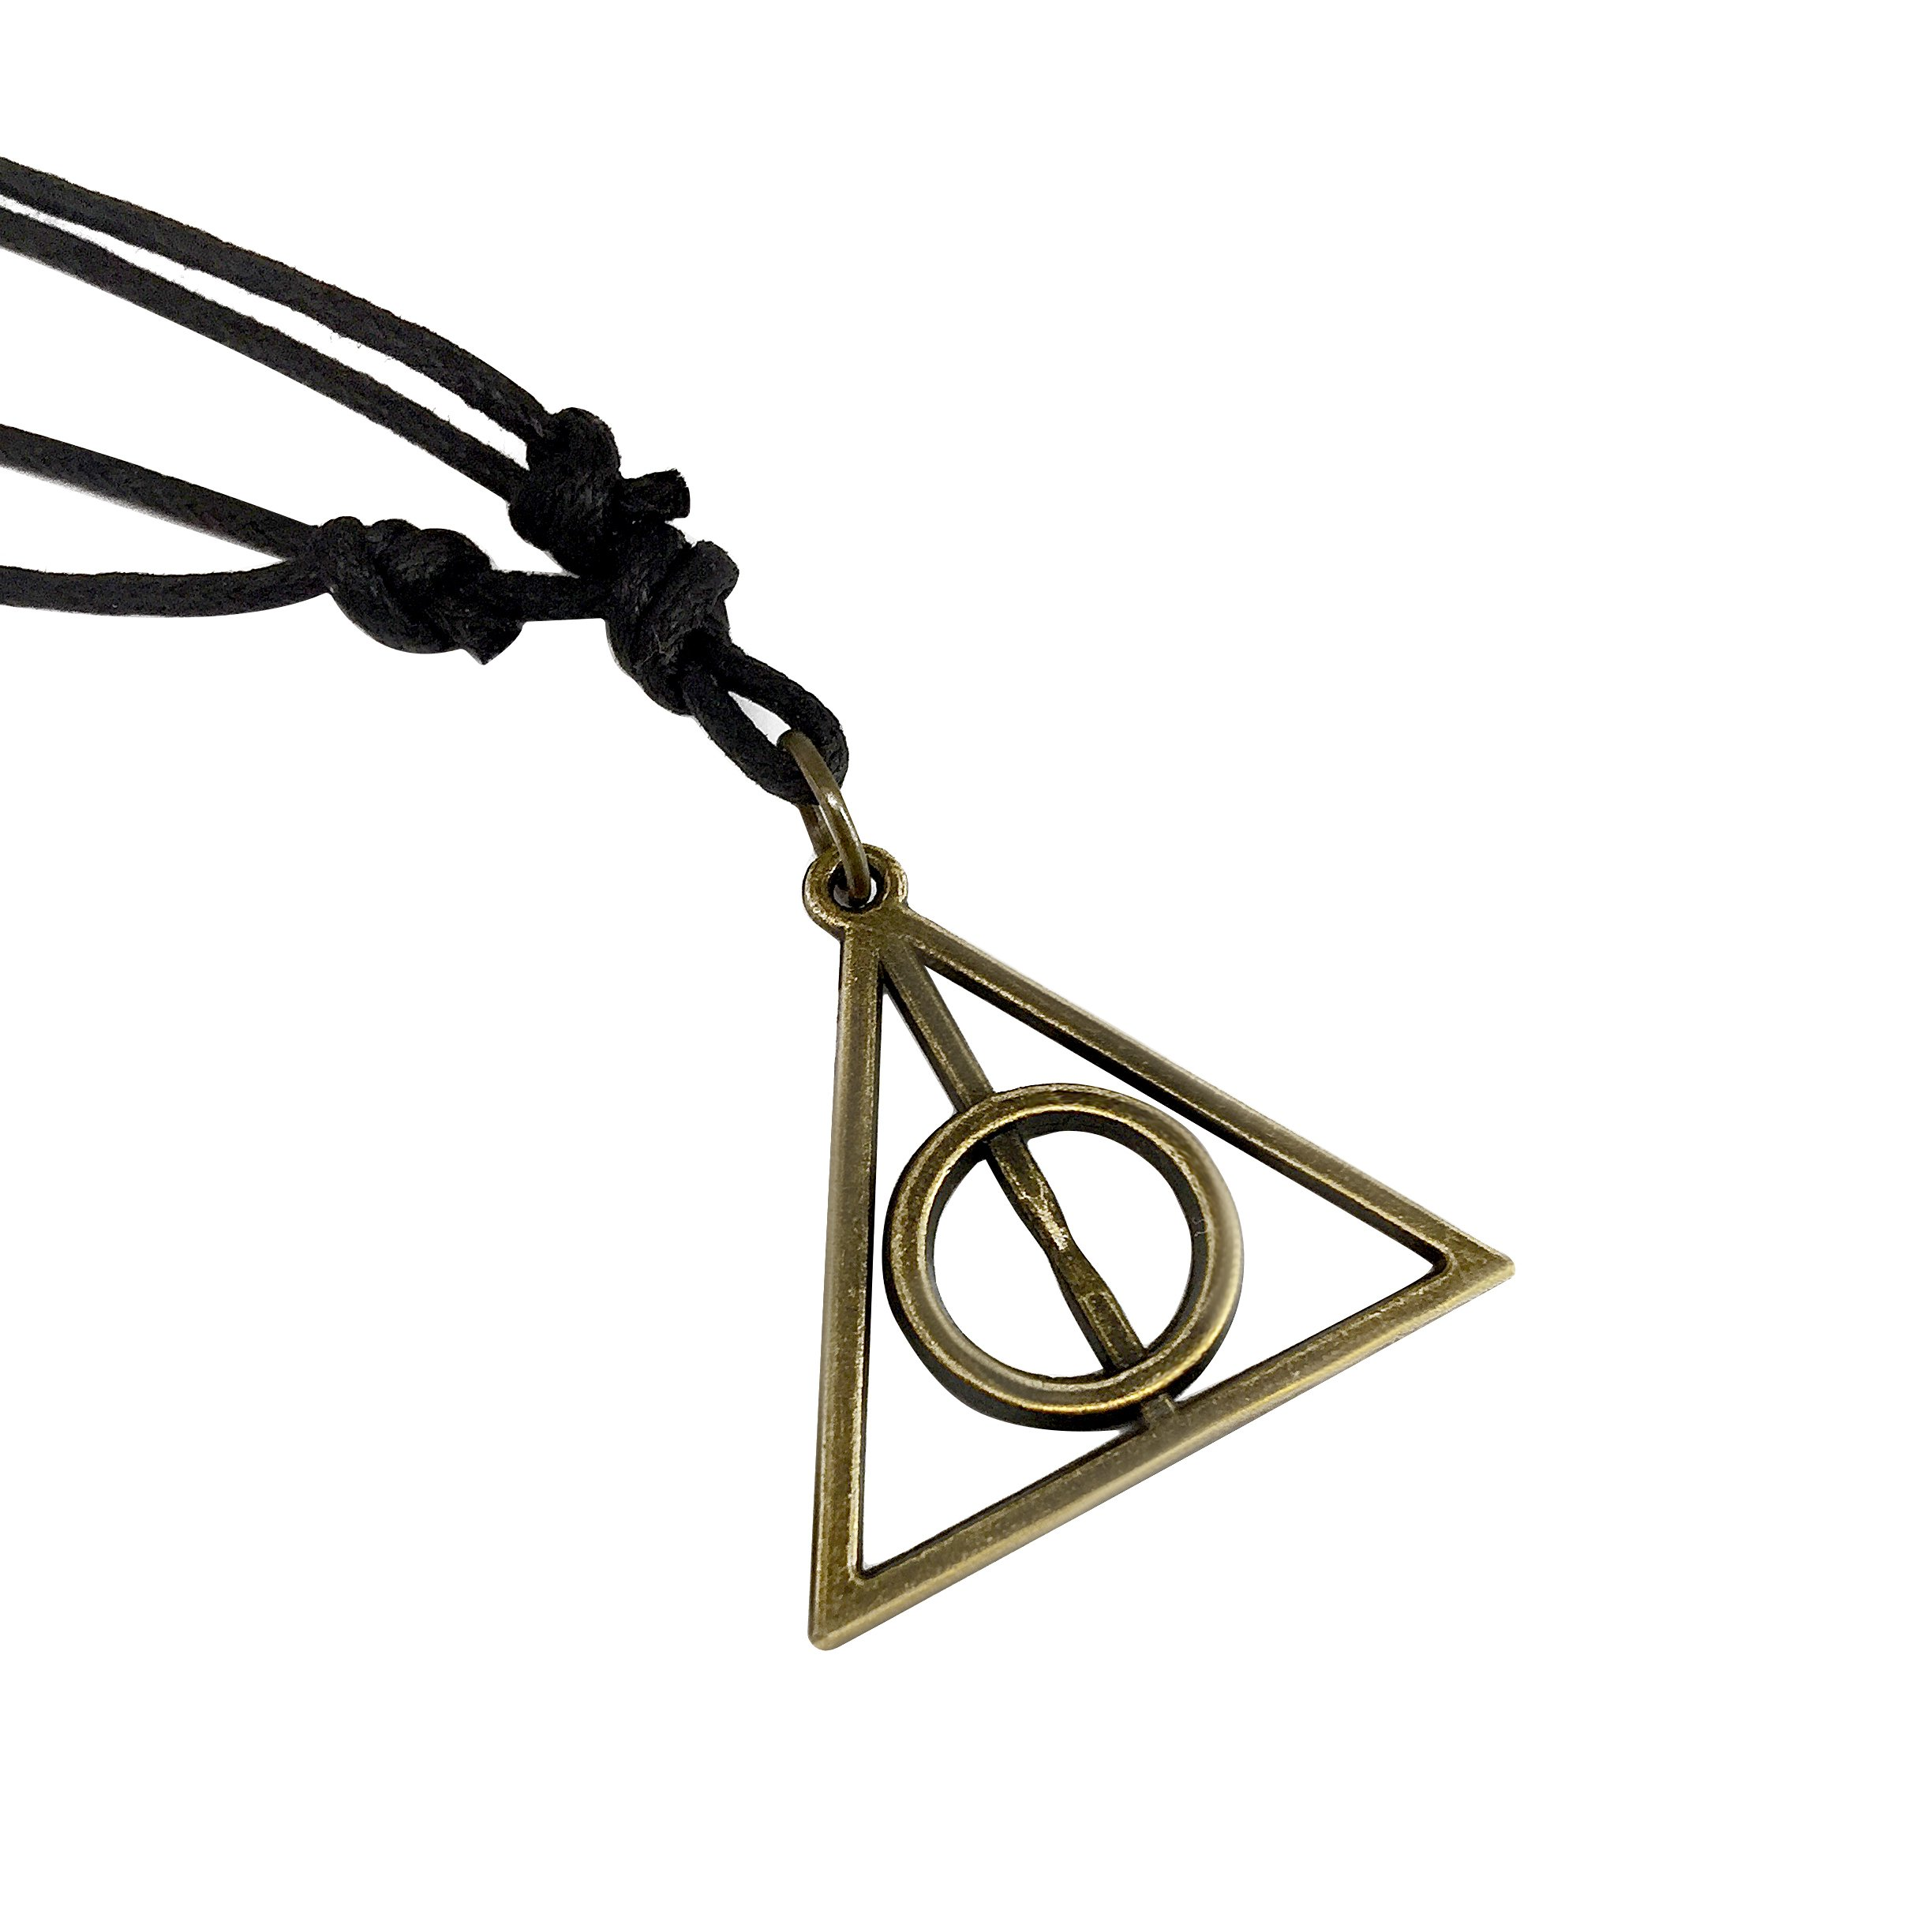 Adeley Mens Womens Harry Potter Deathly Hallows Inspired Brass Charm Adjustable Necklace